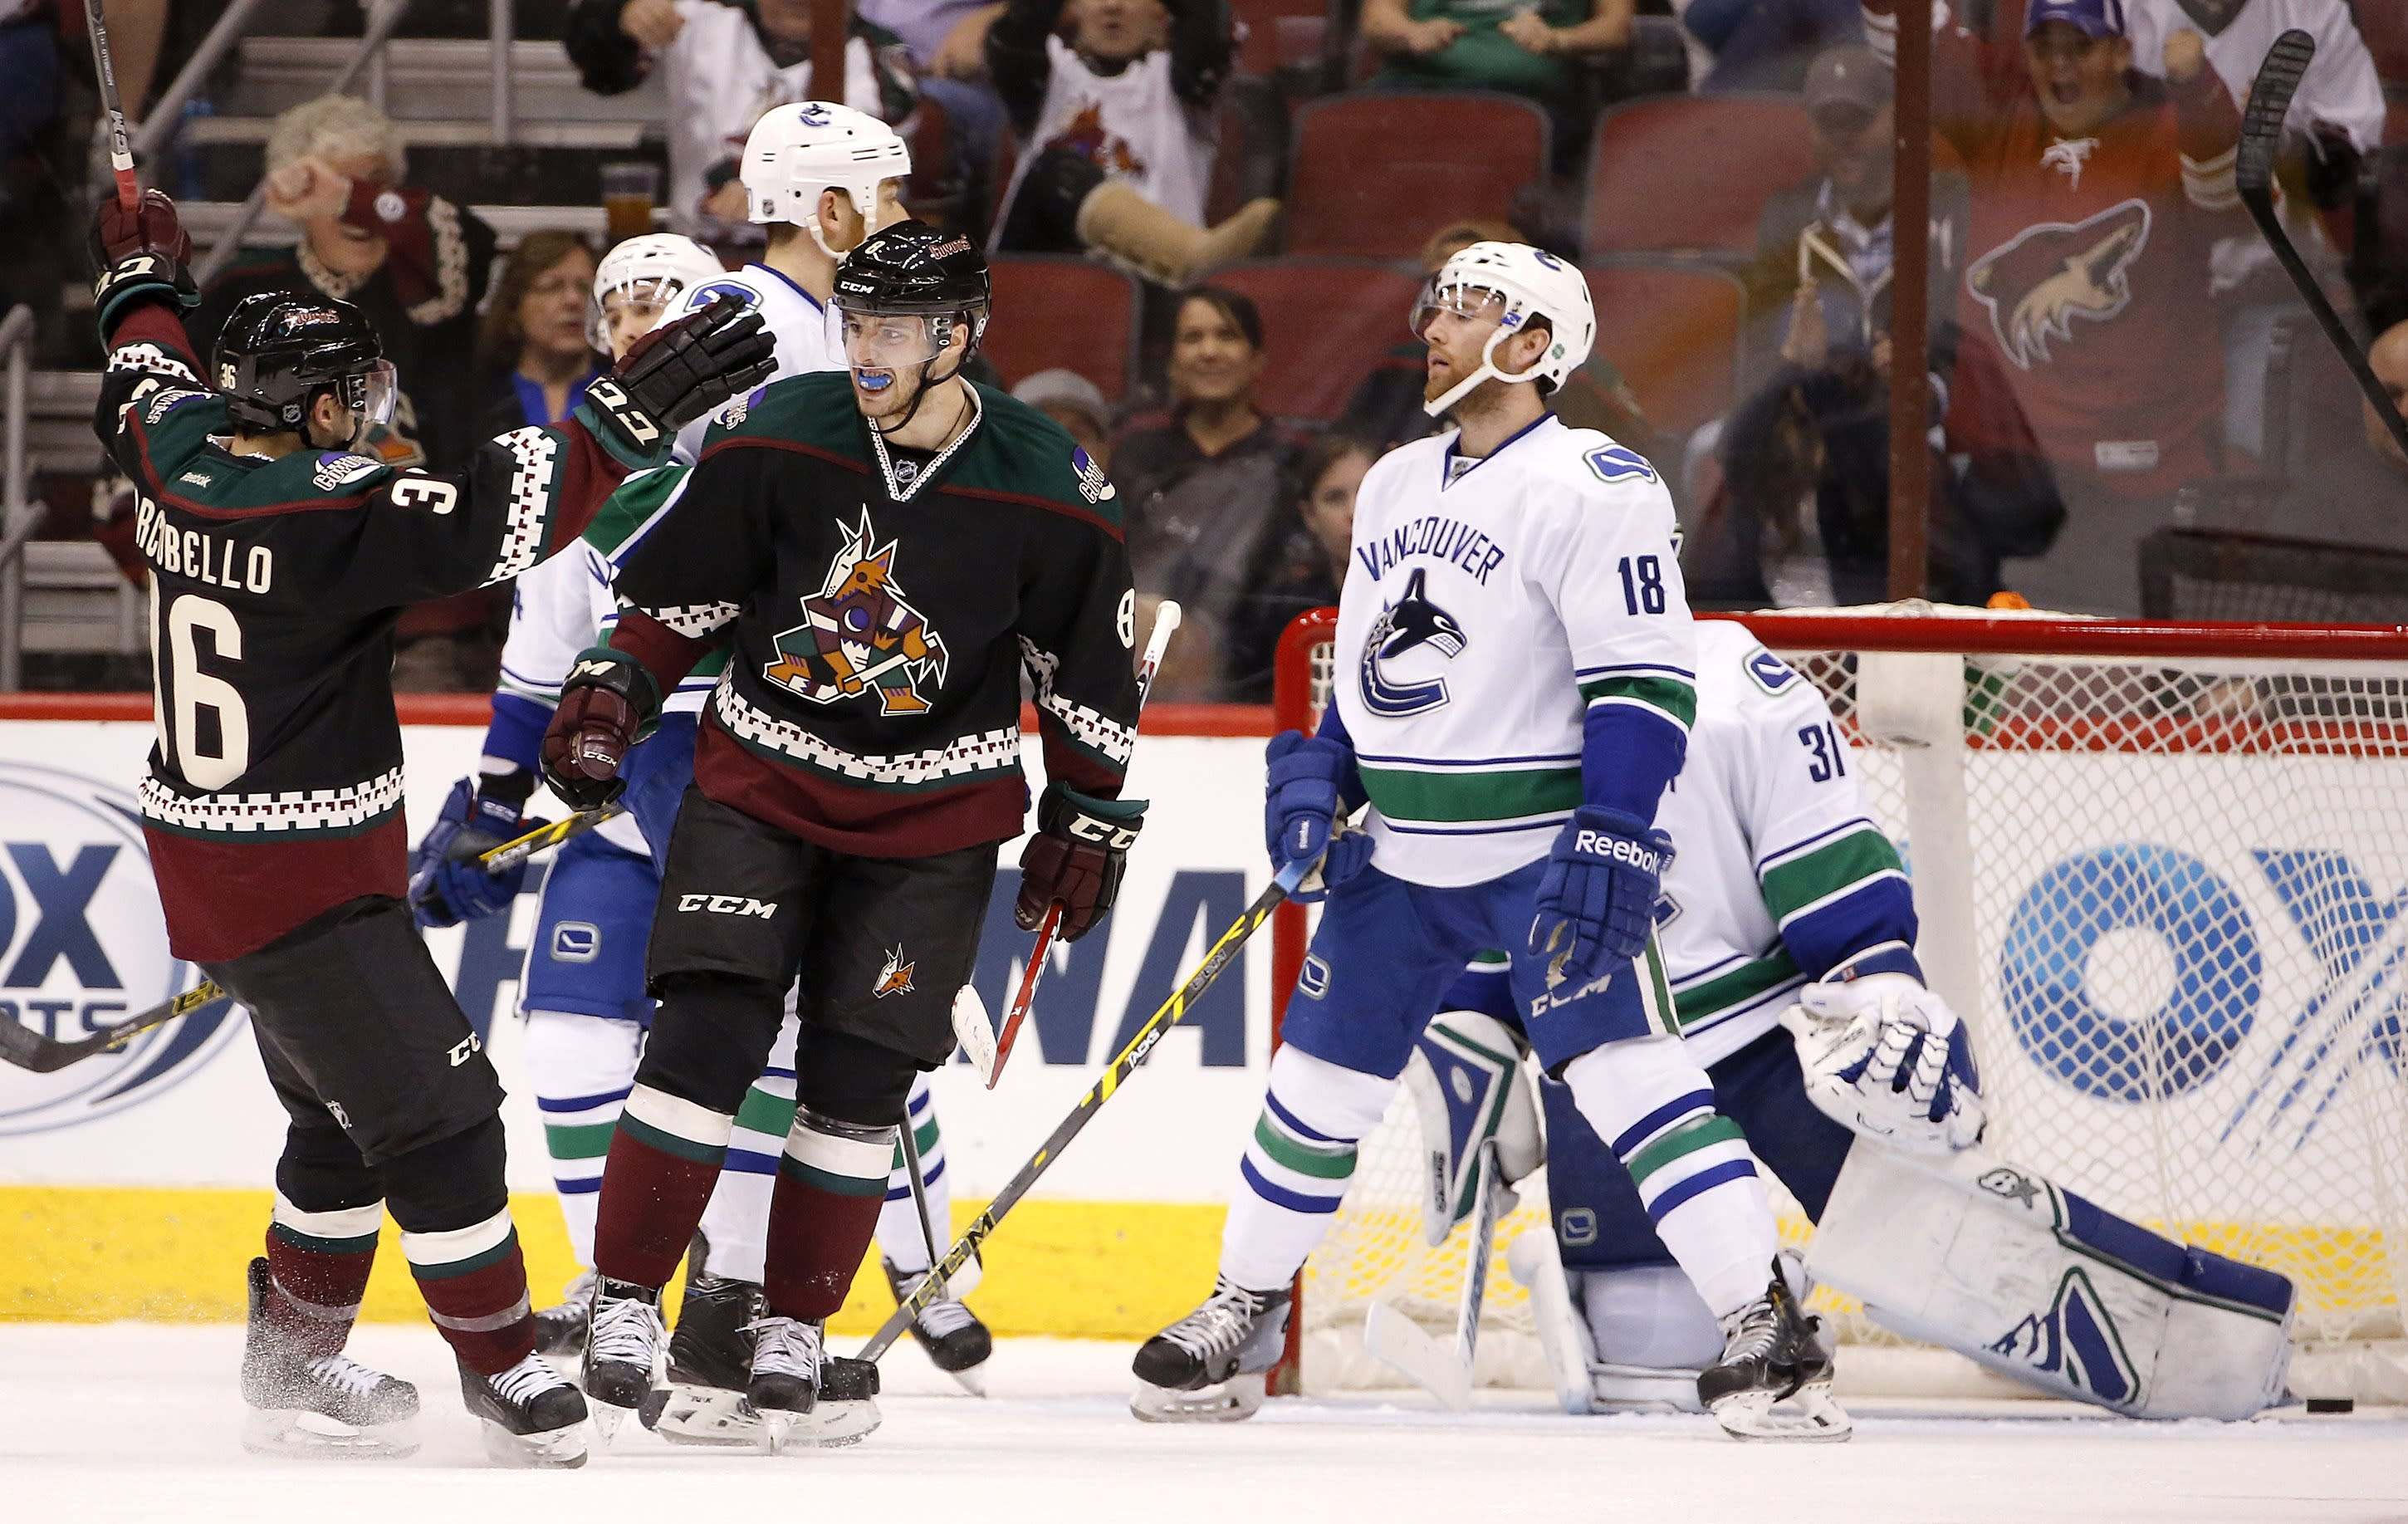 Coyotes end 10-game skid, beat Canucks 3-2 in shootout